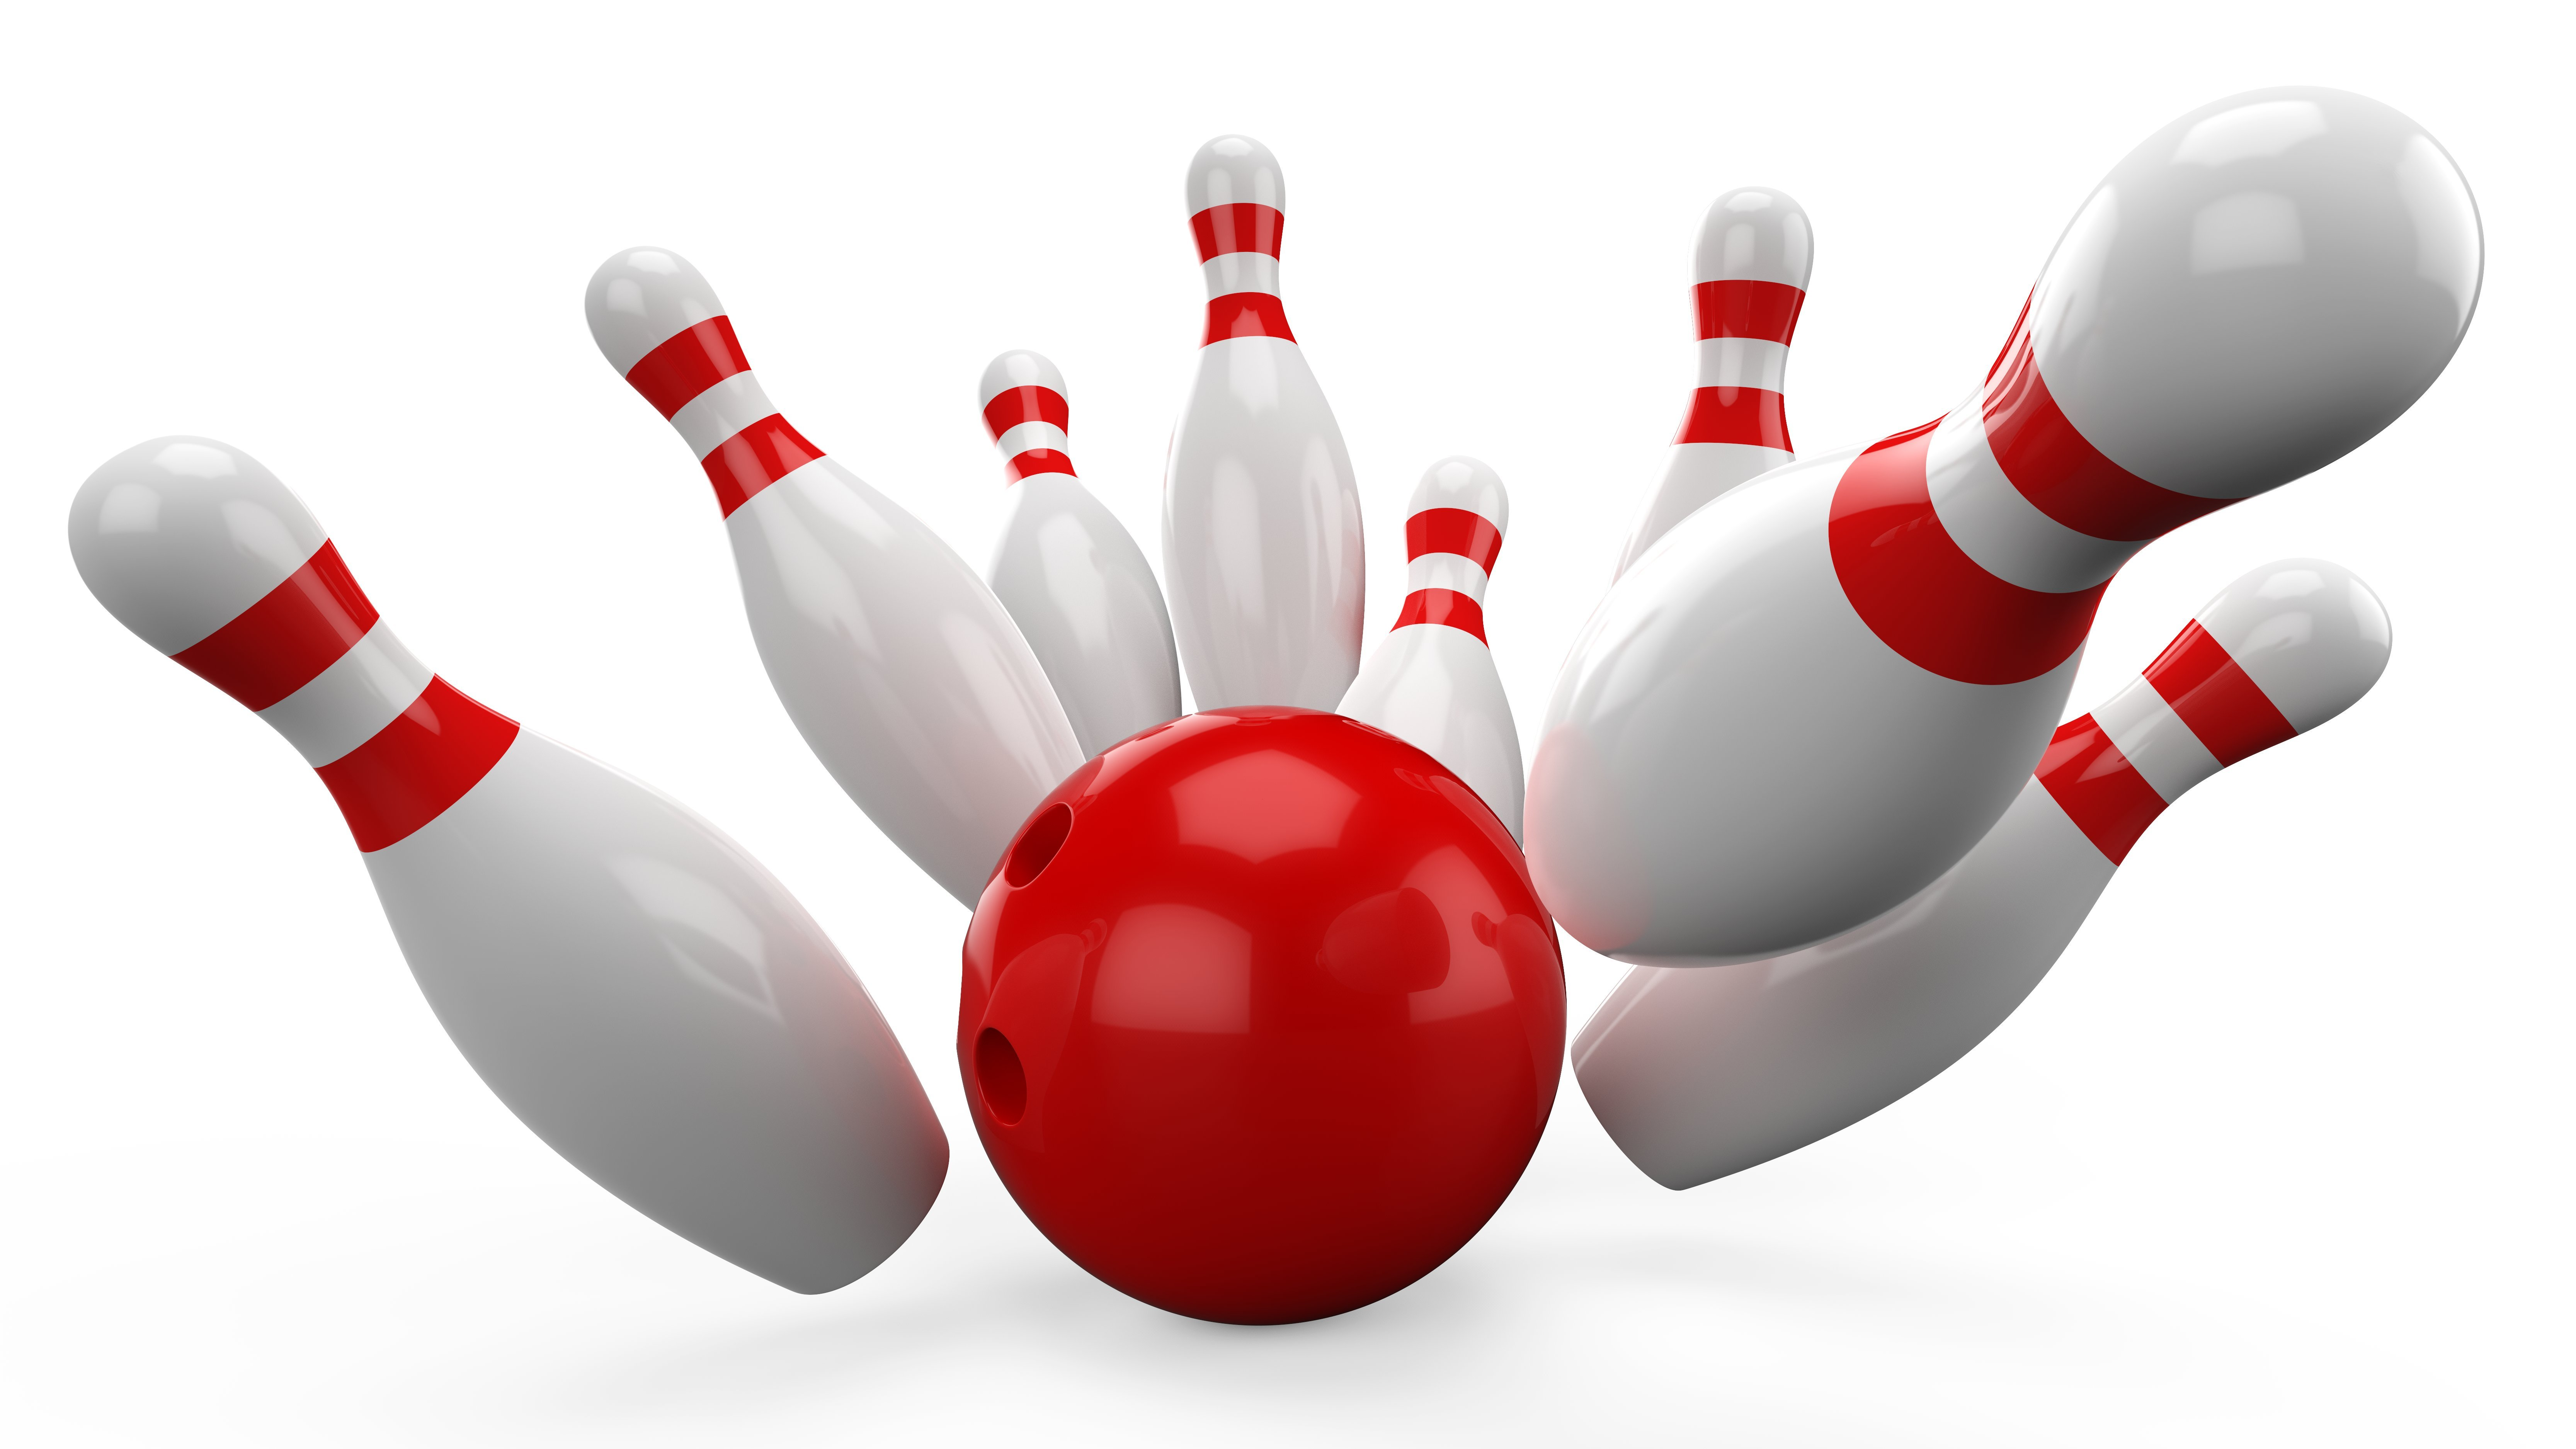 Bowling clipart summer. Activity macclesfield and a